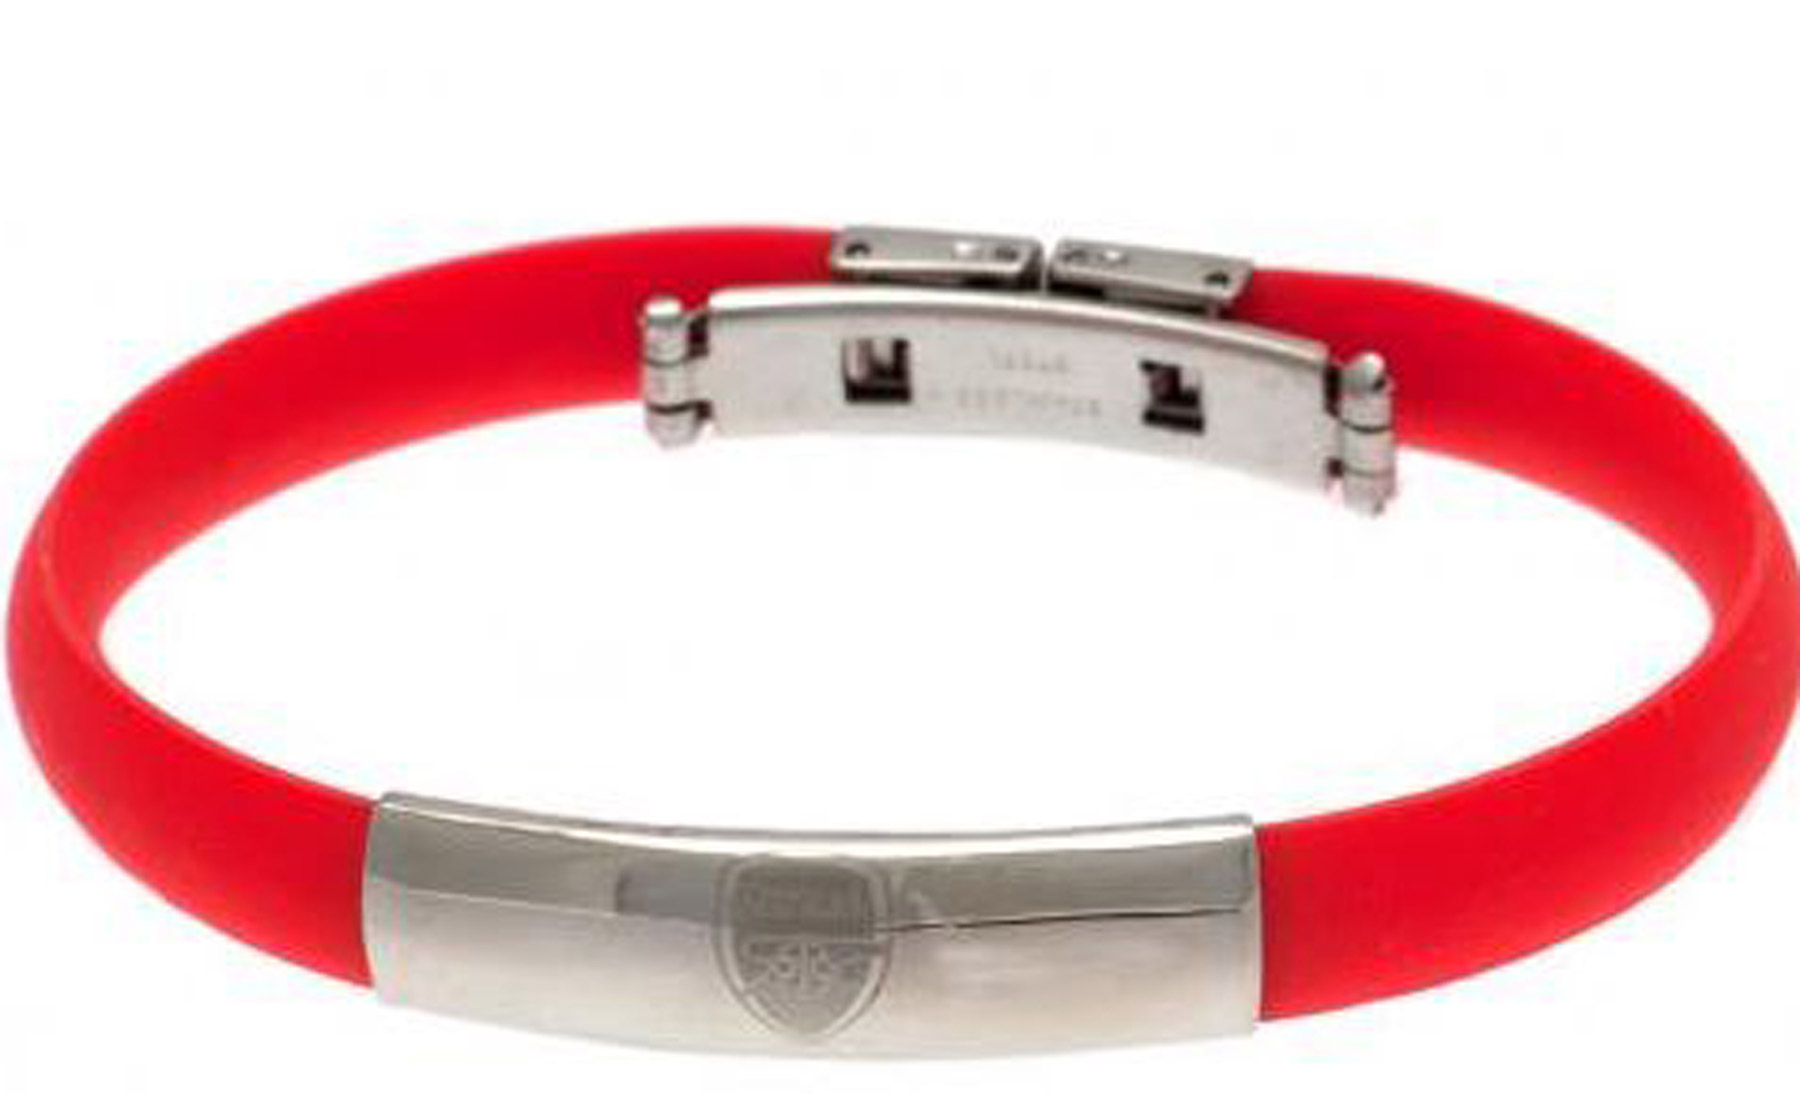 Image of Arsenal Crest Rubber Band Bracelet - Stainless Steel, N/A